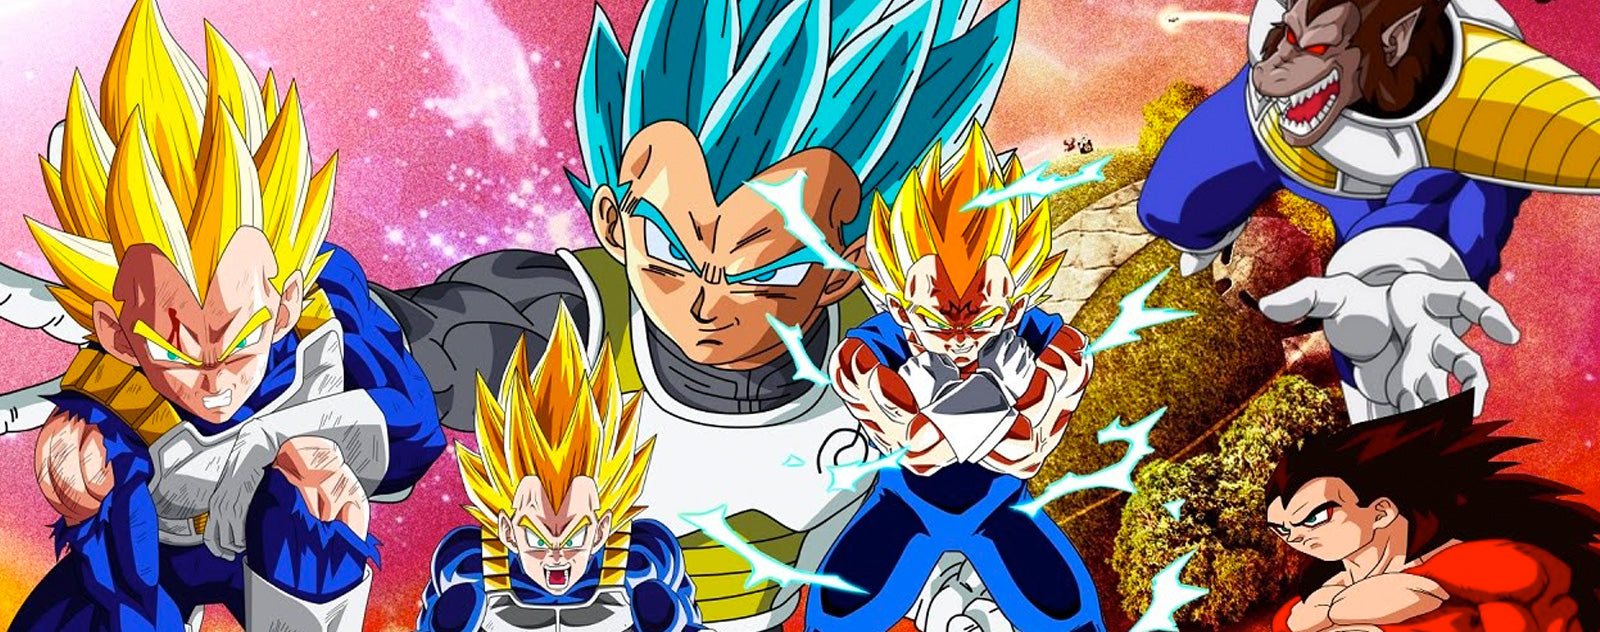 Transformations de Vegeta